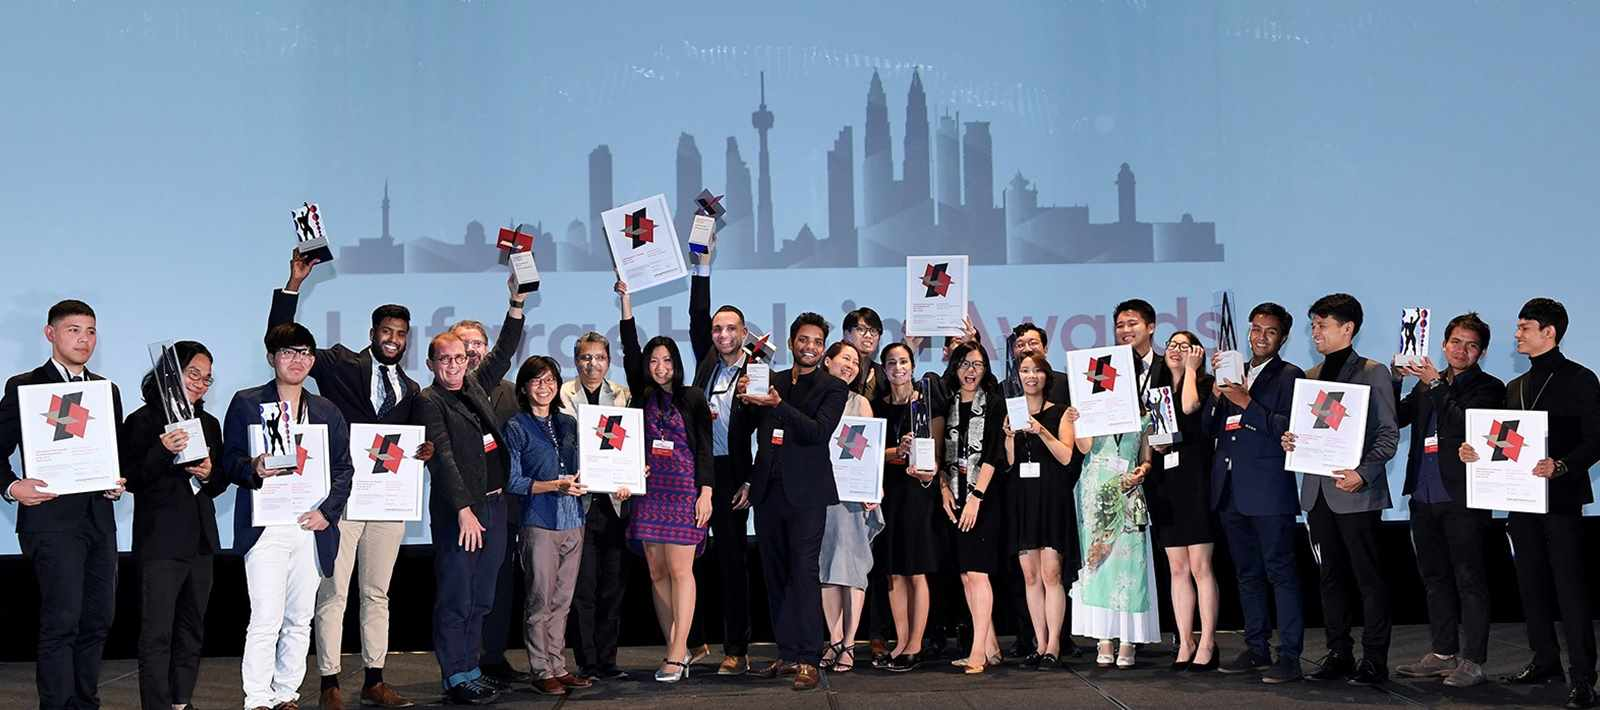 11 winning teams in 5 regions of the world: Celebration for Asia Pacific in Kuala Lumpur, Malaysia